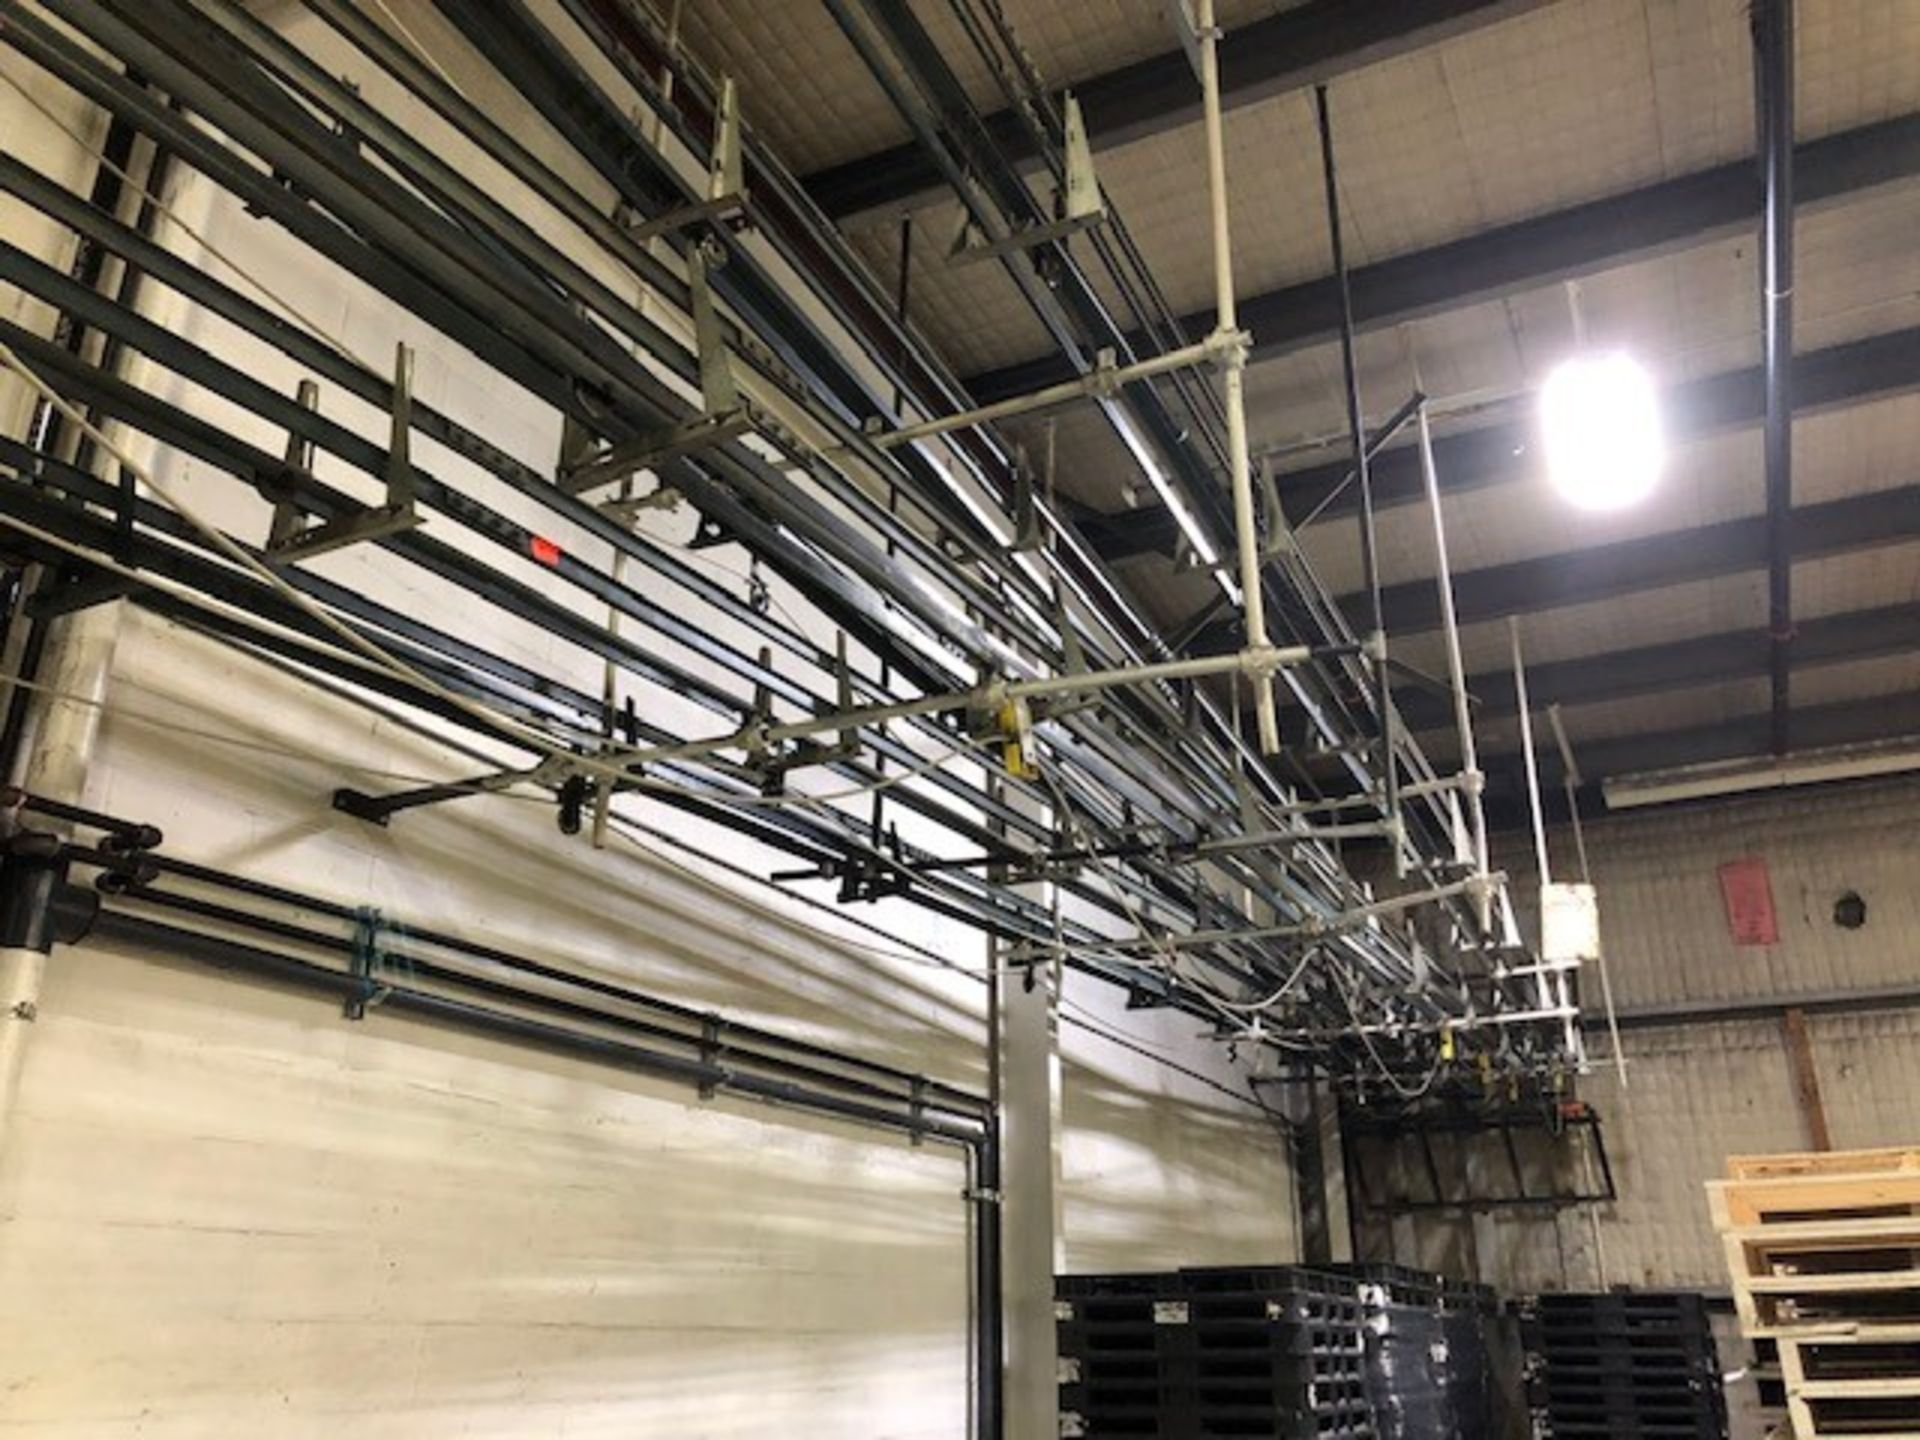 Lot 26 - Empty containers cable conveyors (2xgallons, 1xquarts) Cable Conveyor Systems